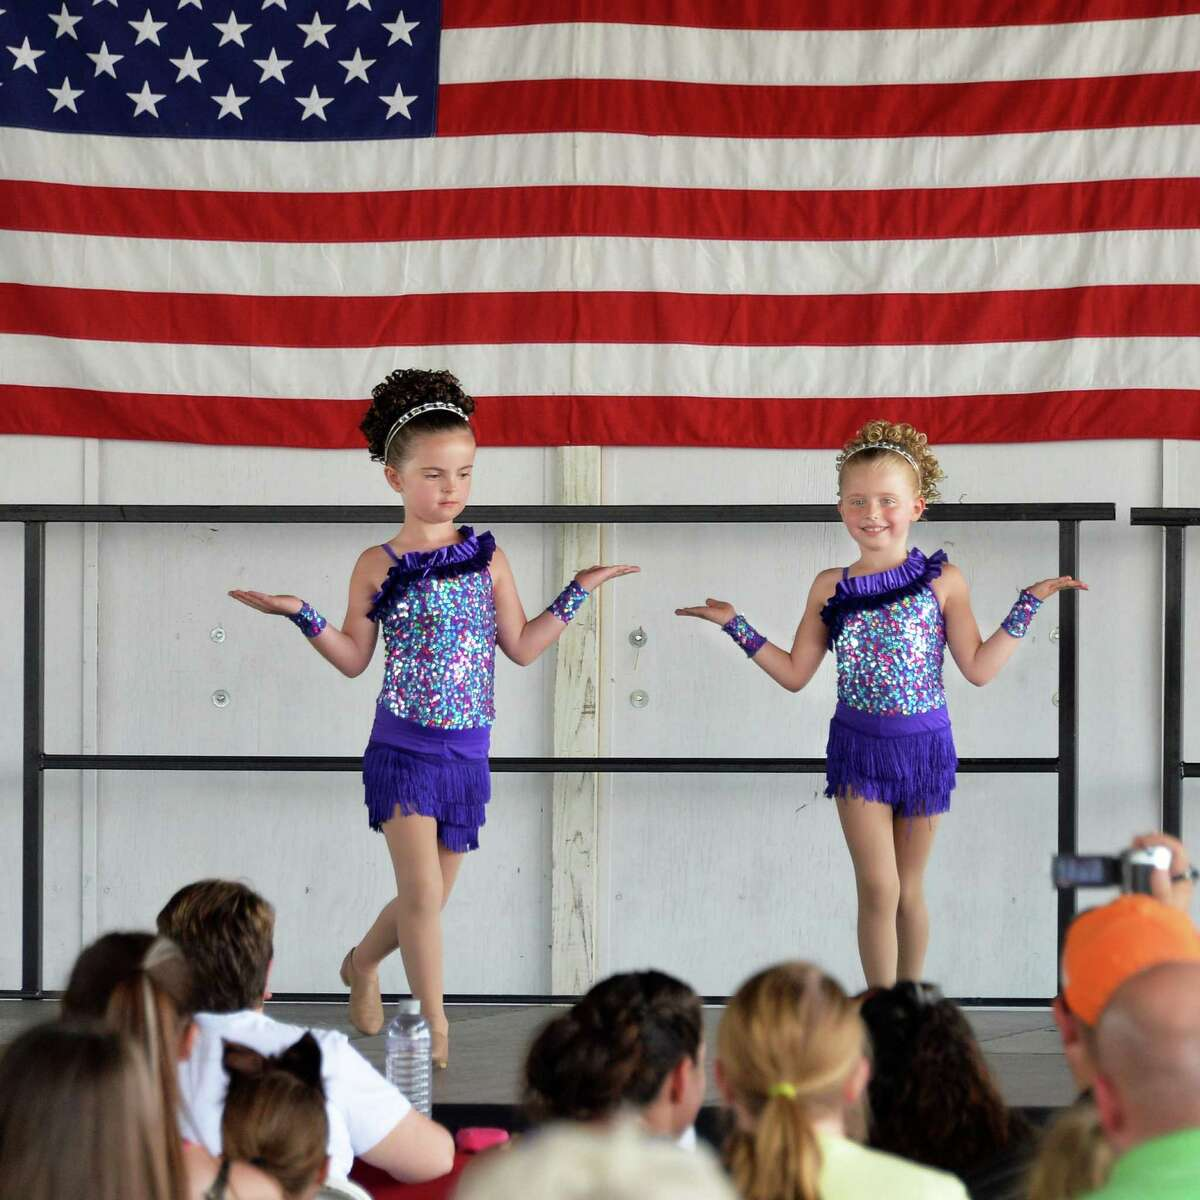 Alyson O'Connor, left, 6, and Emily Hye, 5, of Ballston Spa perform during the under 7 talent show on opening day of the Saratoga County Fair Tuesday July 22, 2014, in Ballston Spa, NY. (John Carl D'Annibale / Times Union)